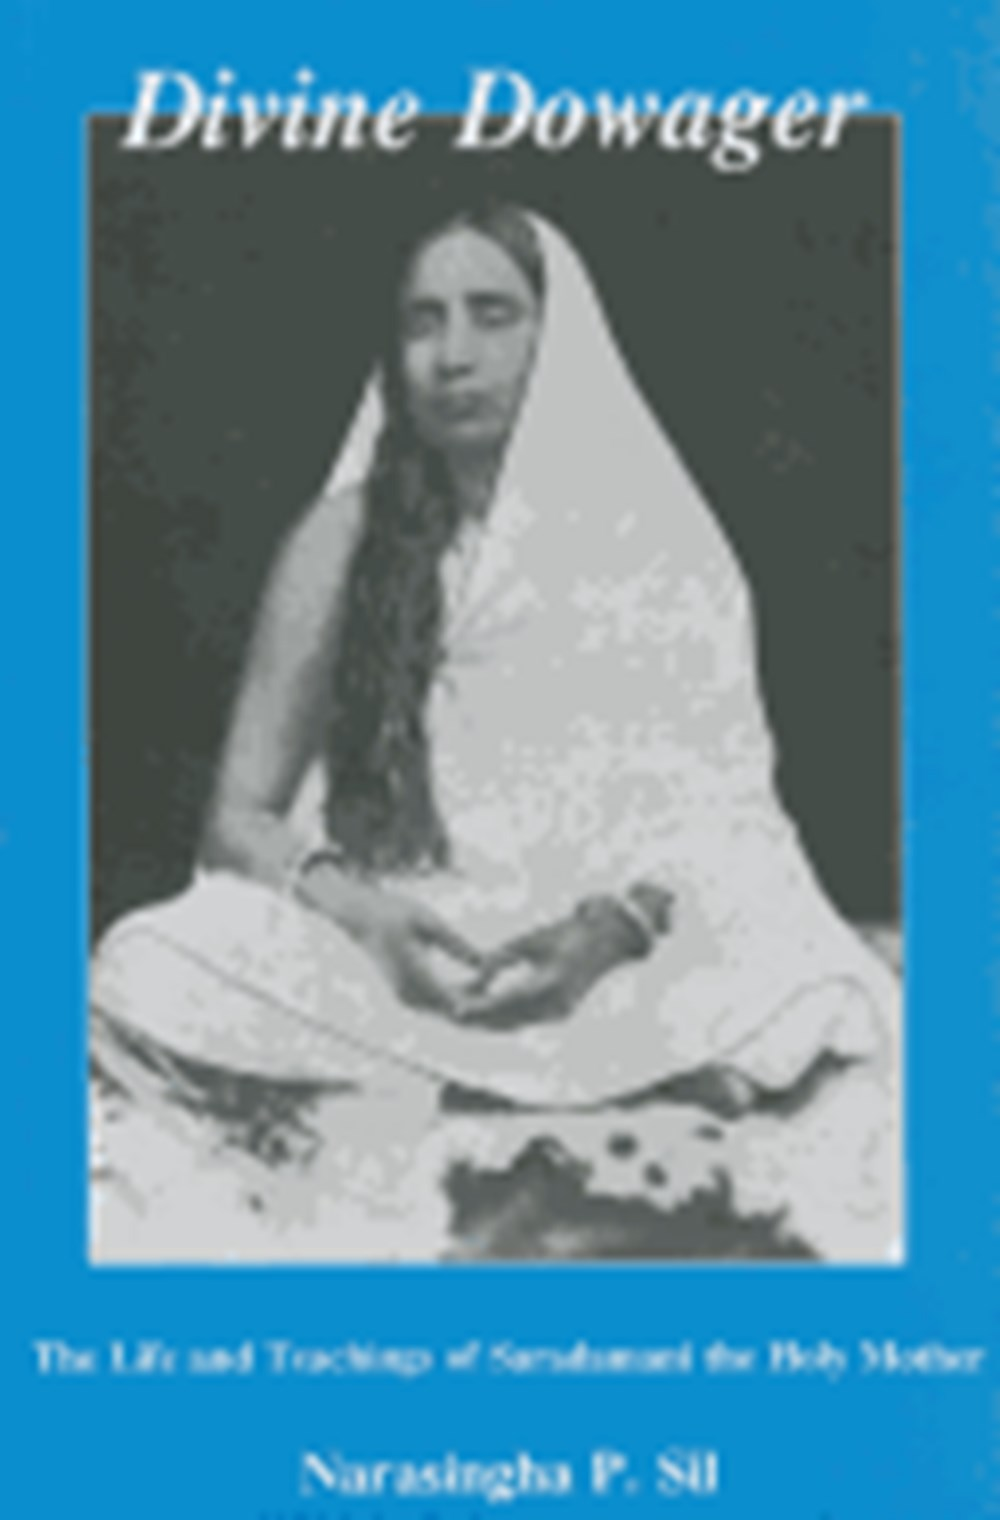 Divine Dowager Life and Teachings of Saradamani the Holy Mother